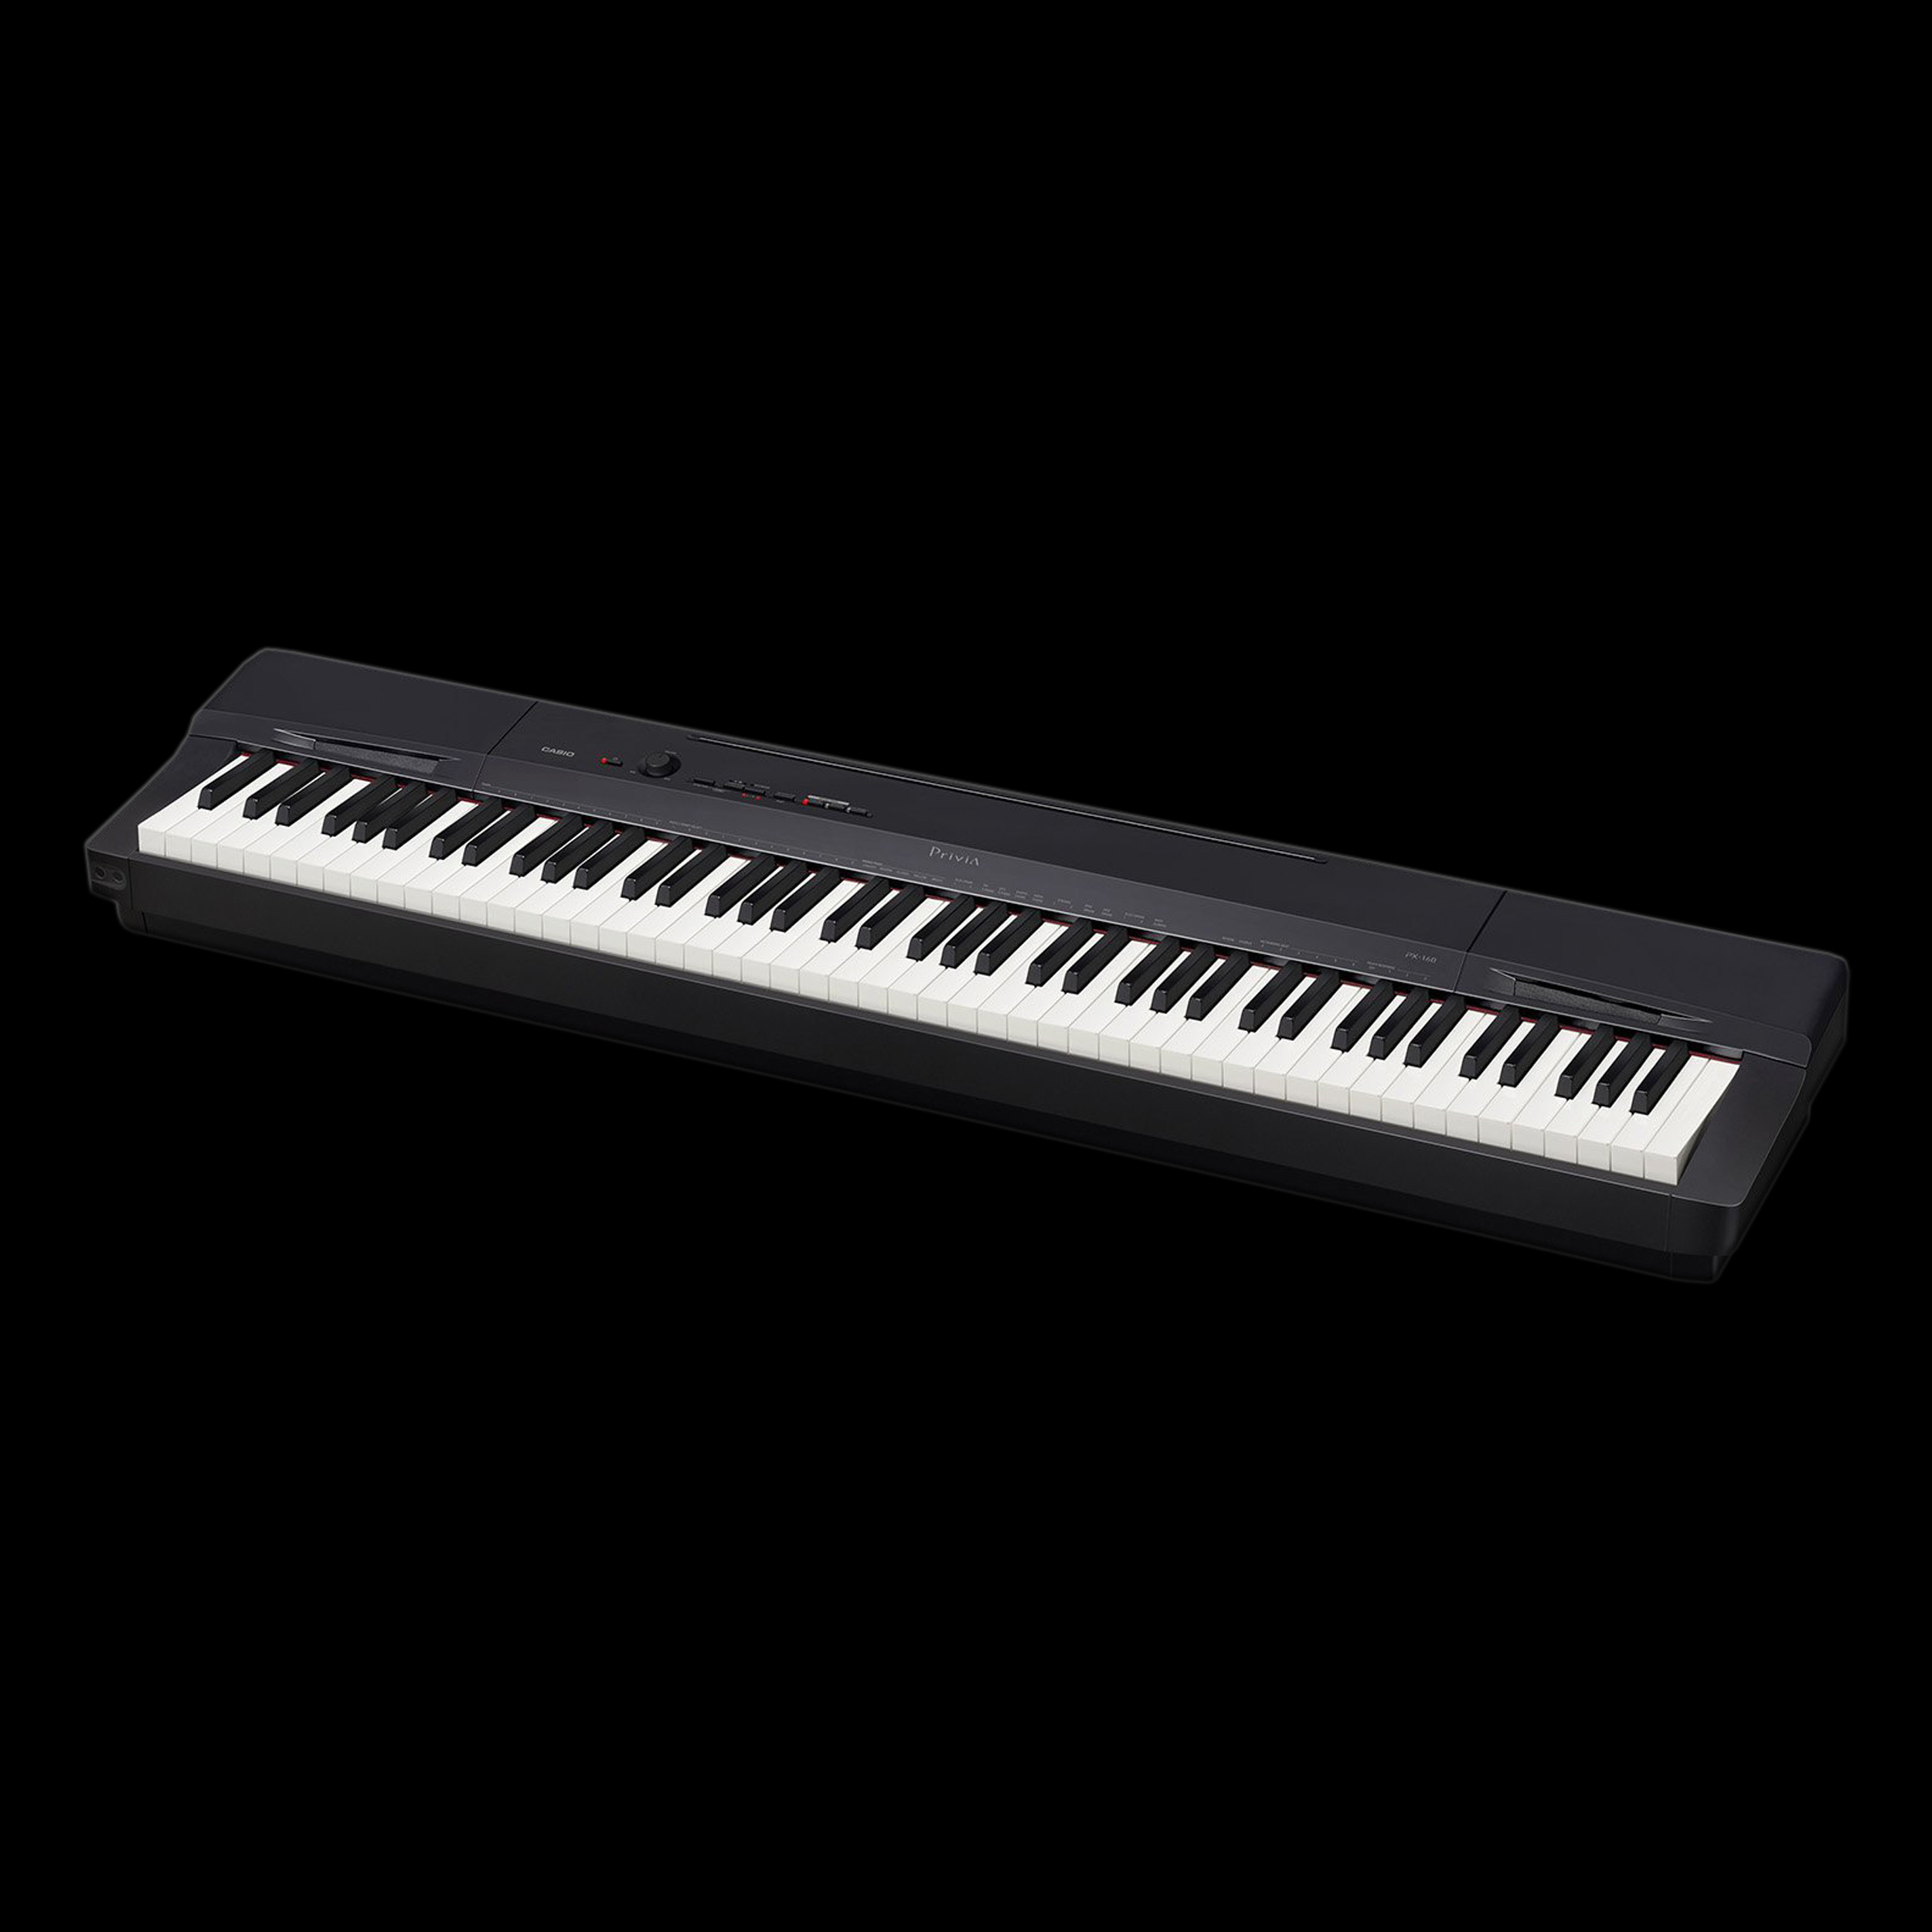 casio px 160bk digital piano 88 full weighted keys black ebay. Black Bedroom Furniture Sets. Home Design Ideas